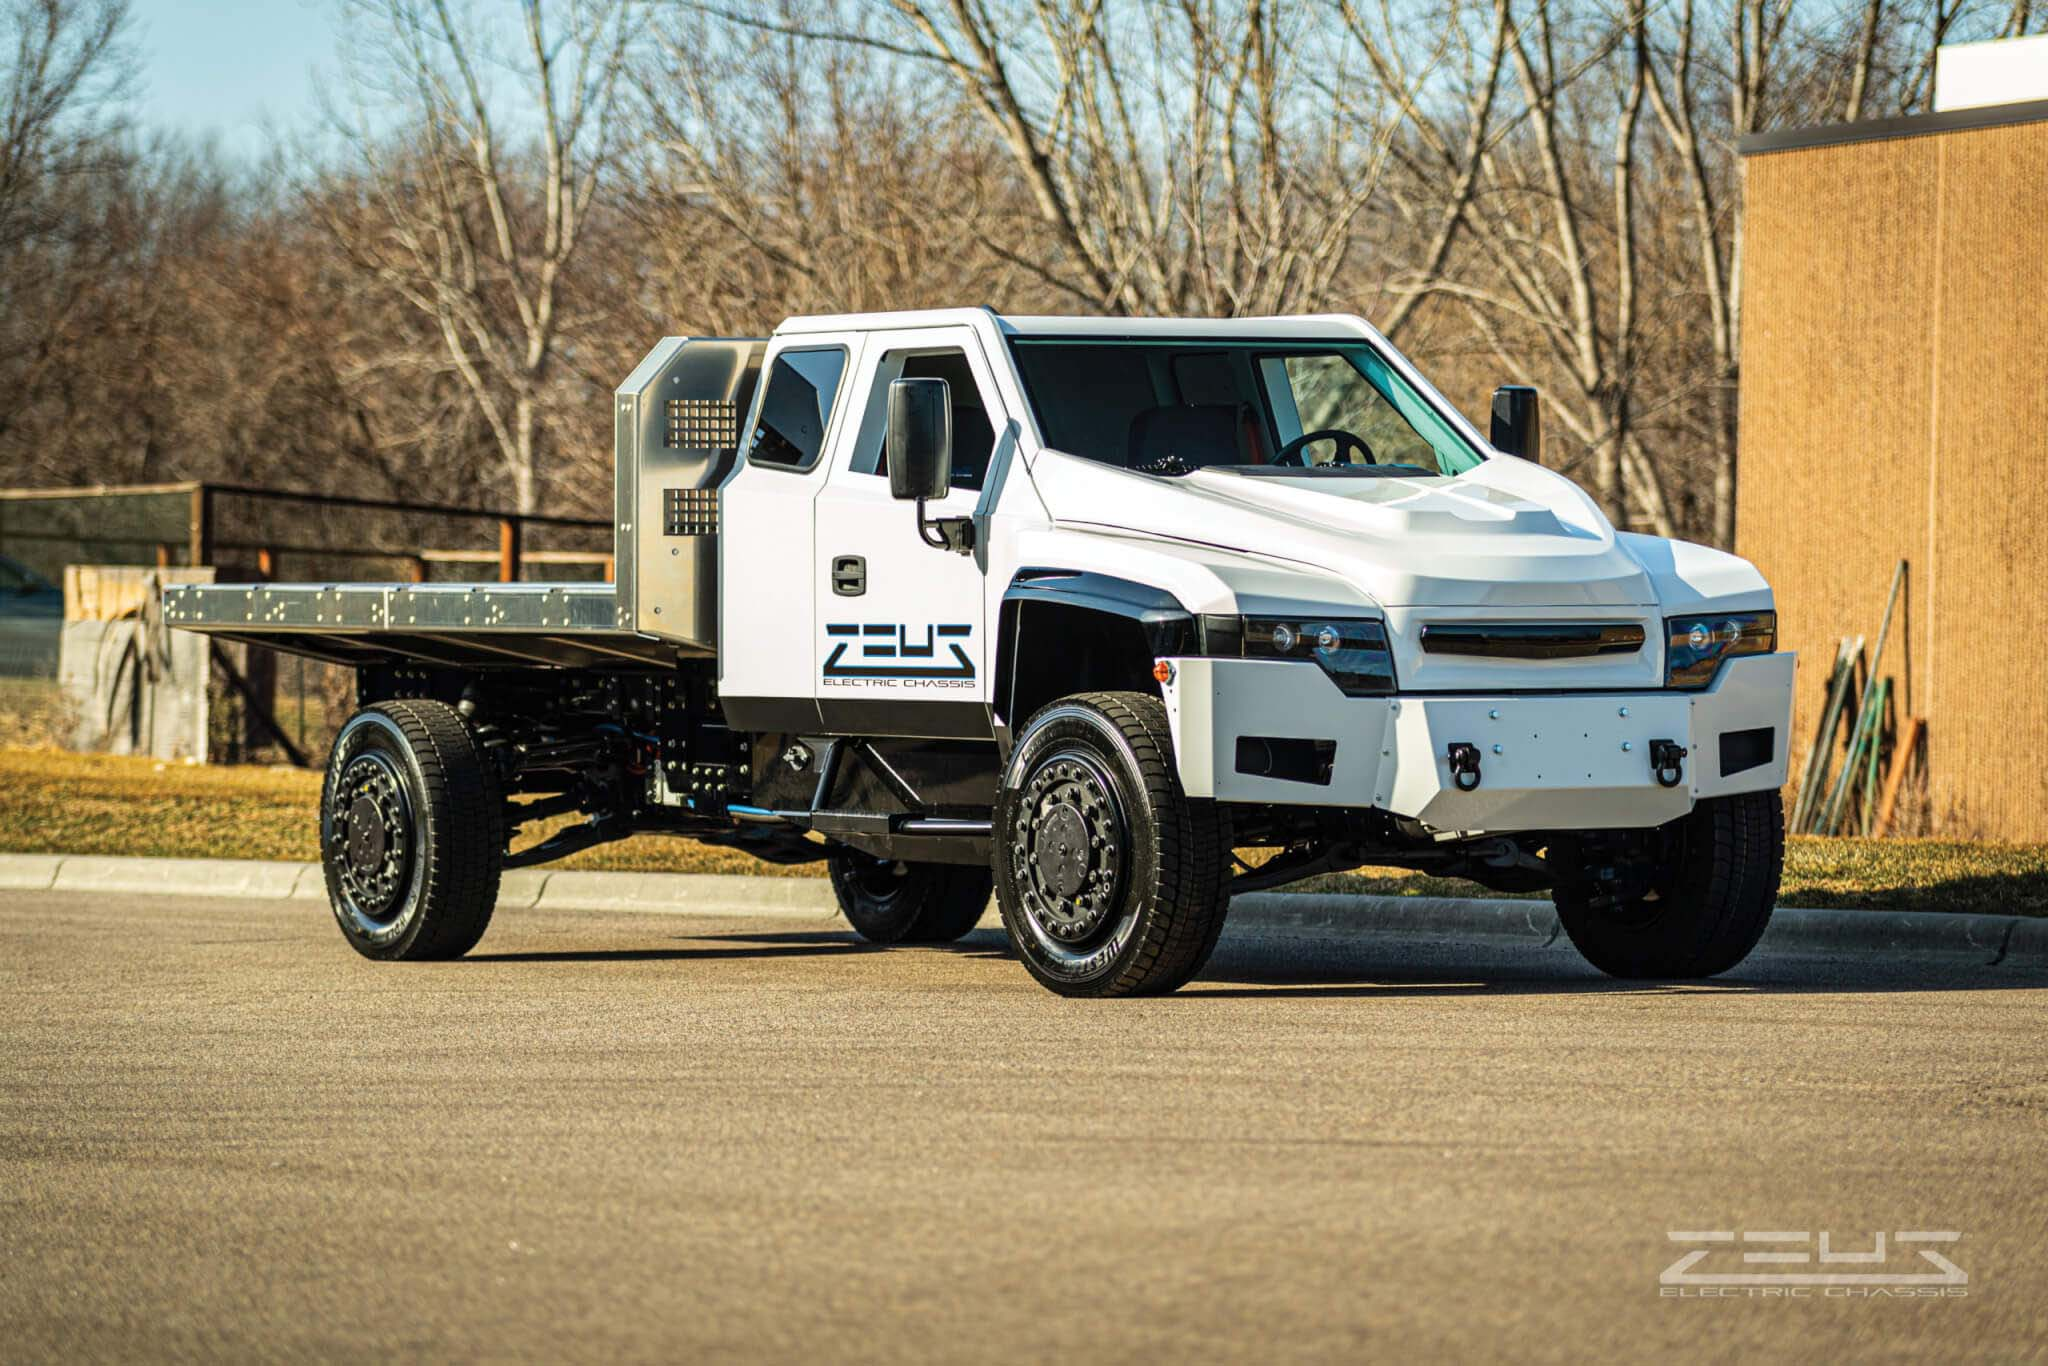 Zeus Electric Chassis and EAVX Join to Create Vocational Work Trucks